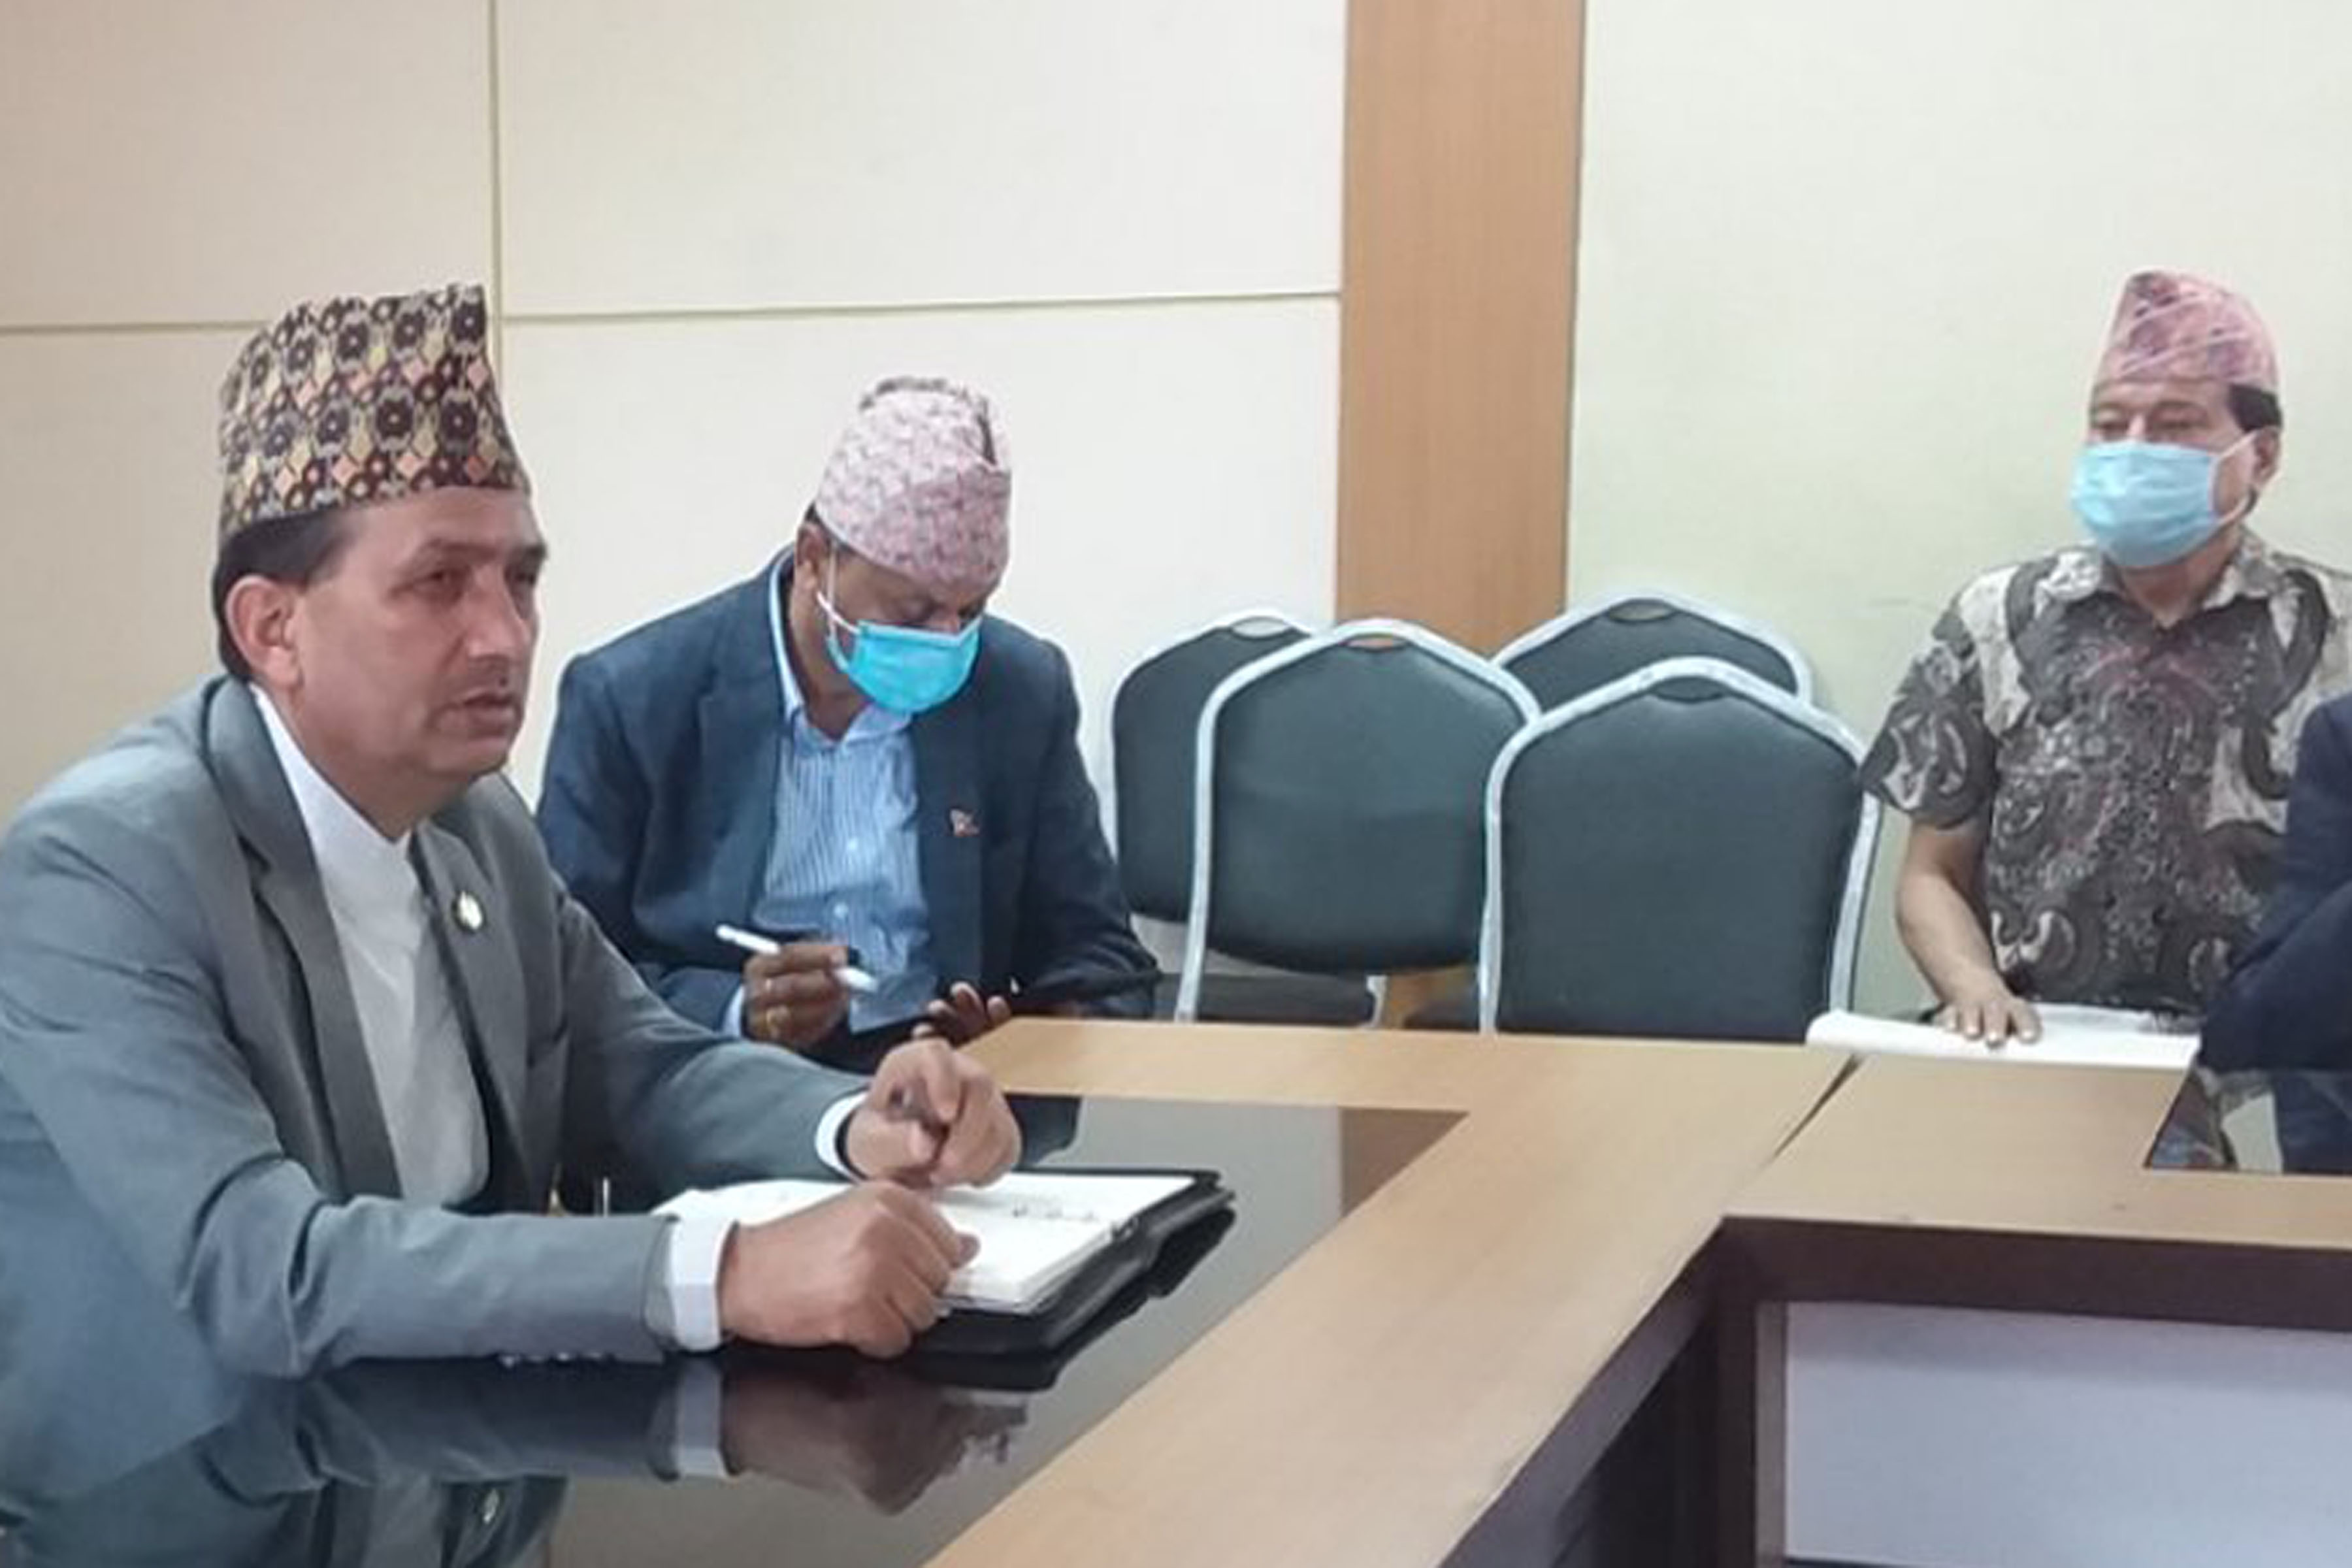 Minister for Health and Population Bhanu Bhakta Dhakal (left) takes part in an interaction with experts at the Ministry, on Saturday, April 4, 2020. Photo: MoHP via RSS